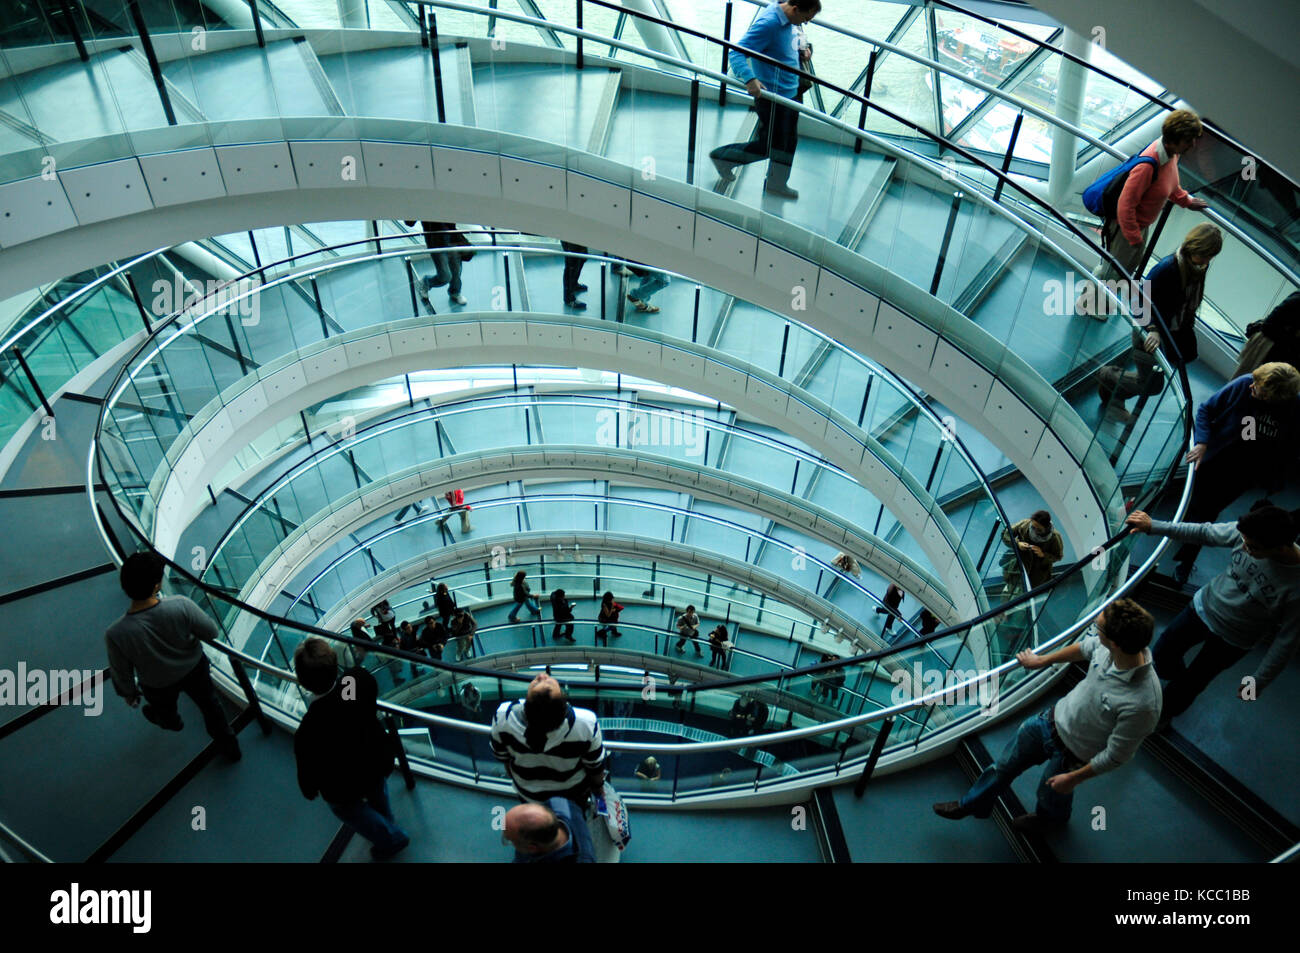 London City Hall, The Queen's Walk, Southwark, London - Stock Image